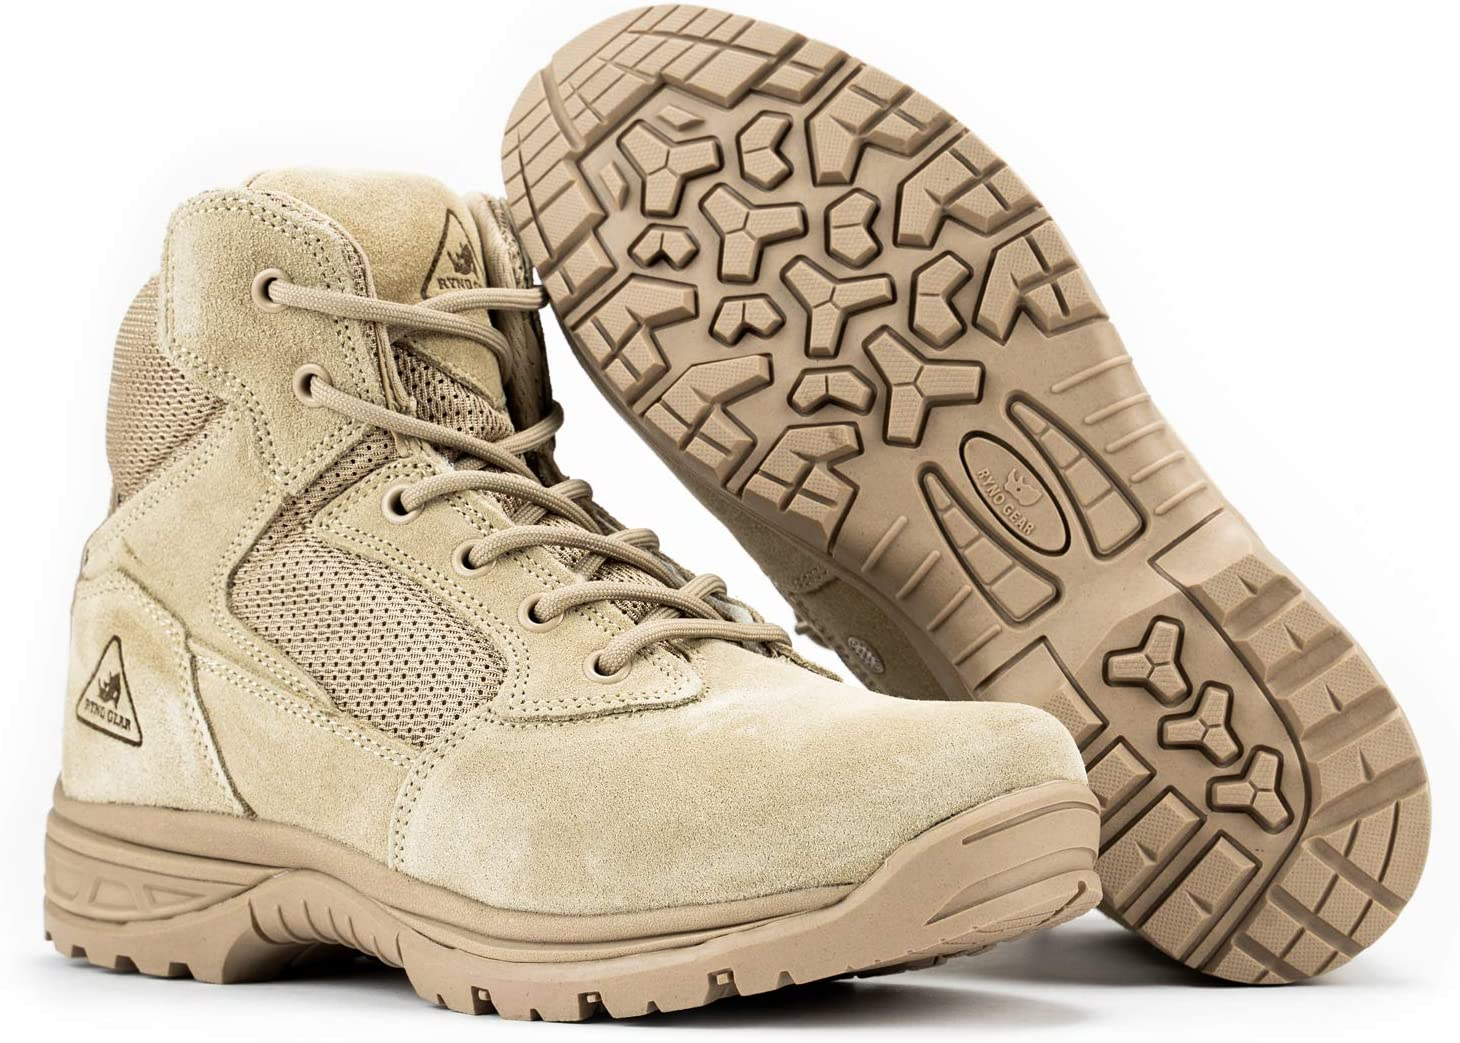 RYNO GEAR Tactical Combat with Ranking TOP20 Financial sales sale Boots Coolmax Lining